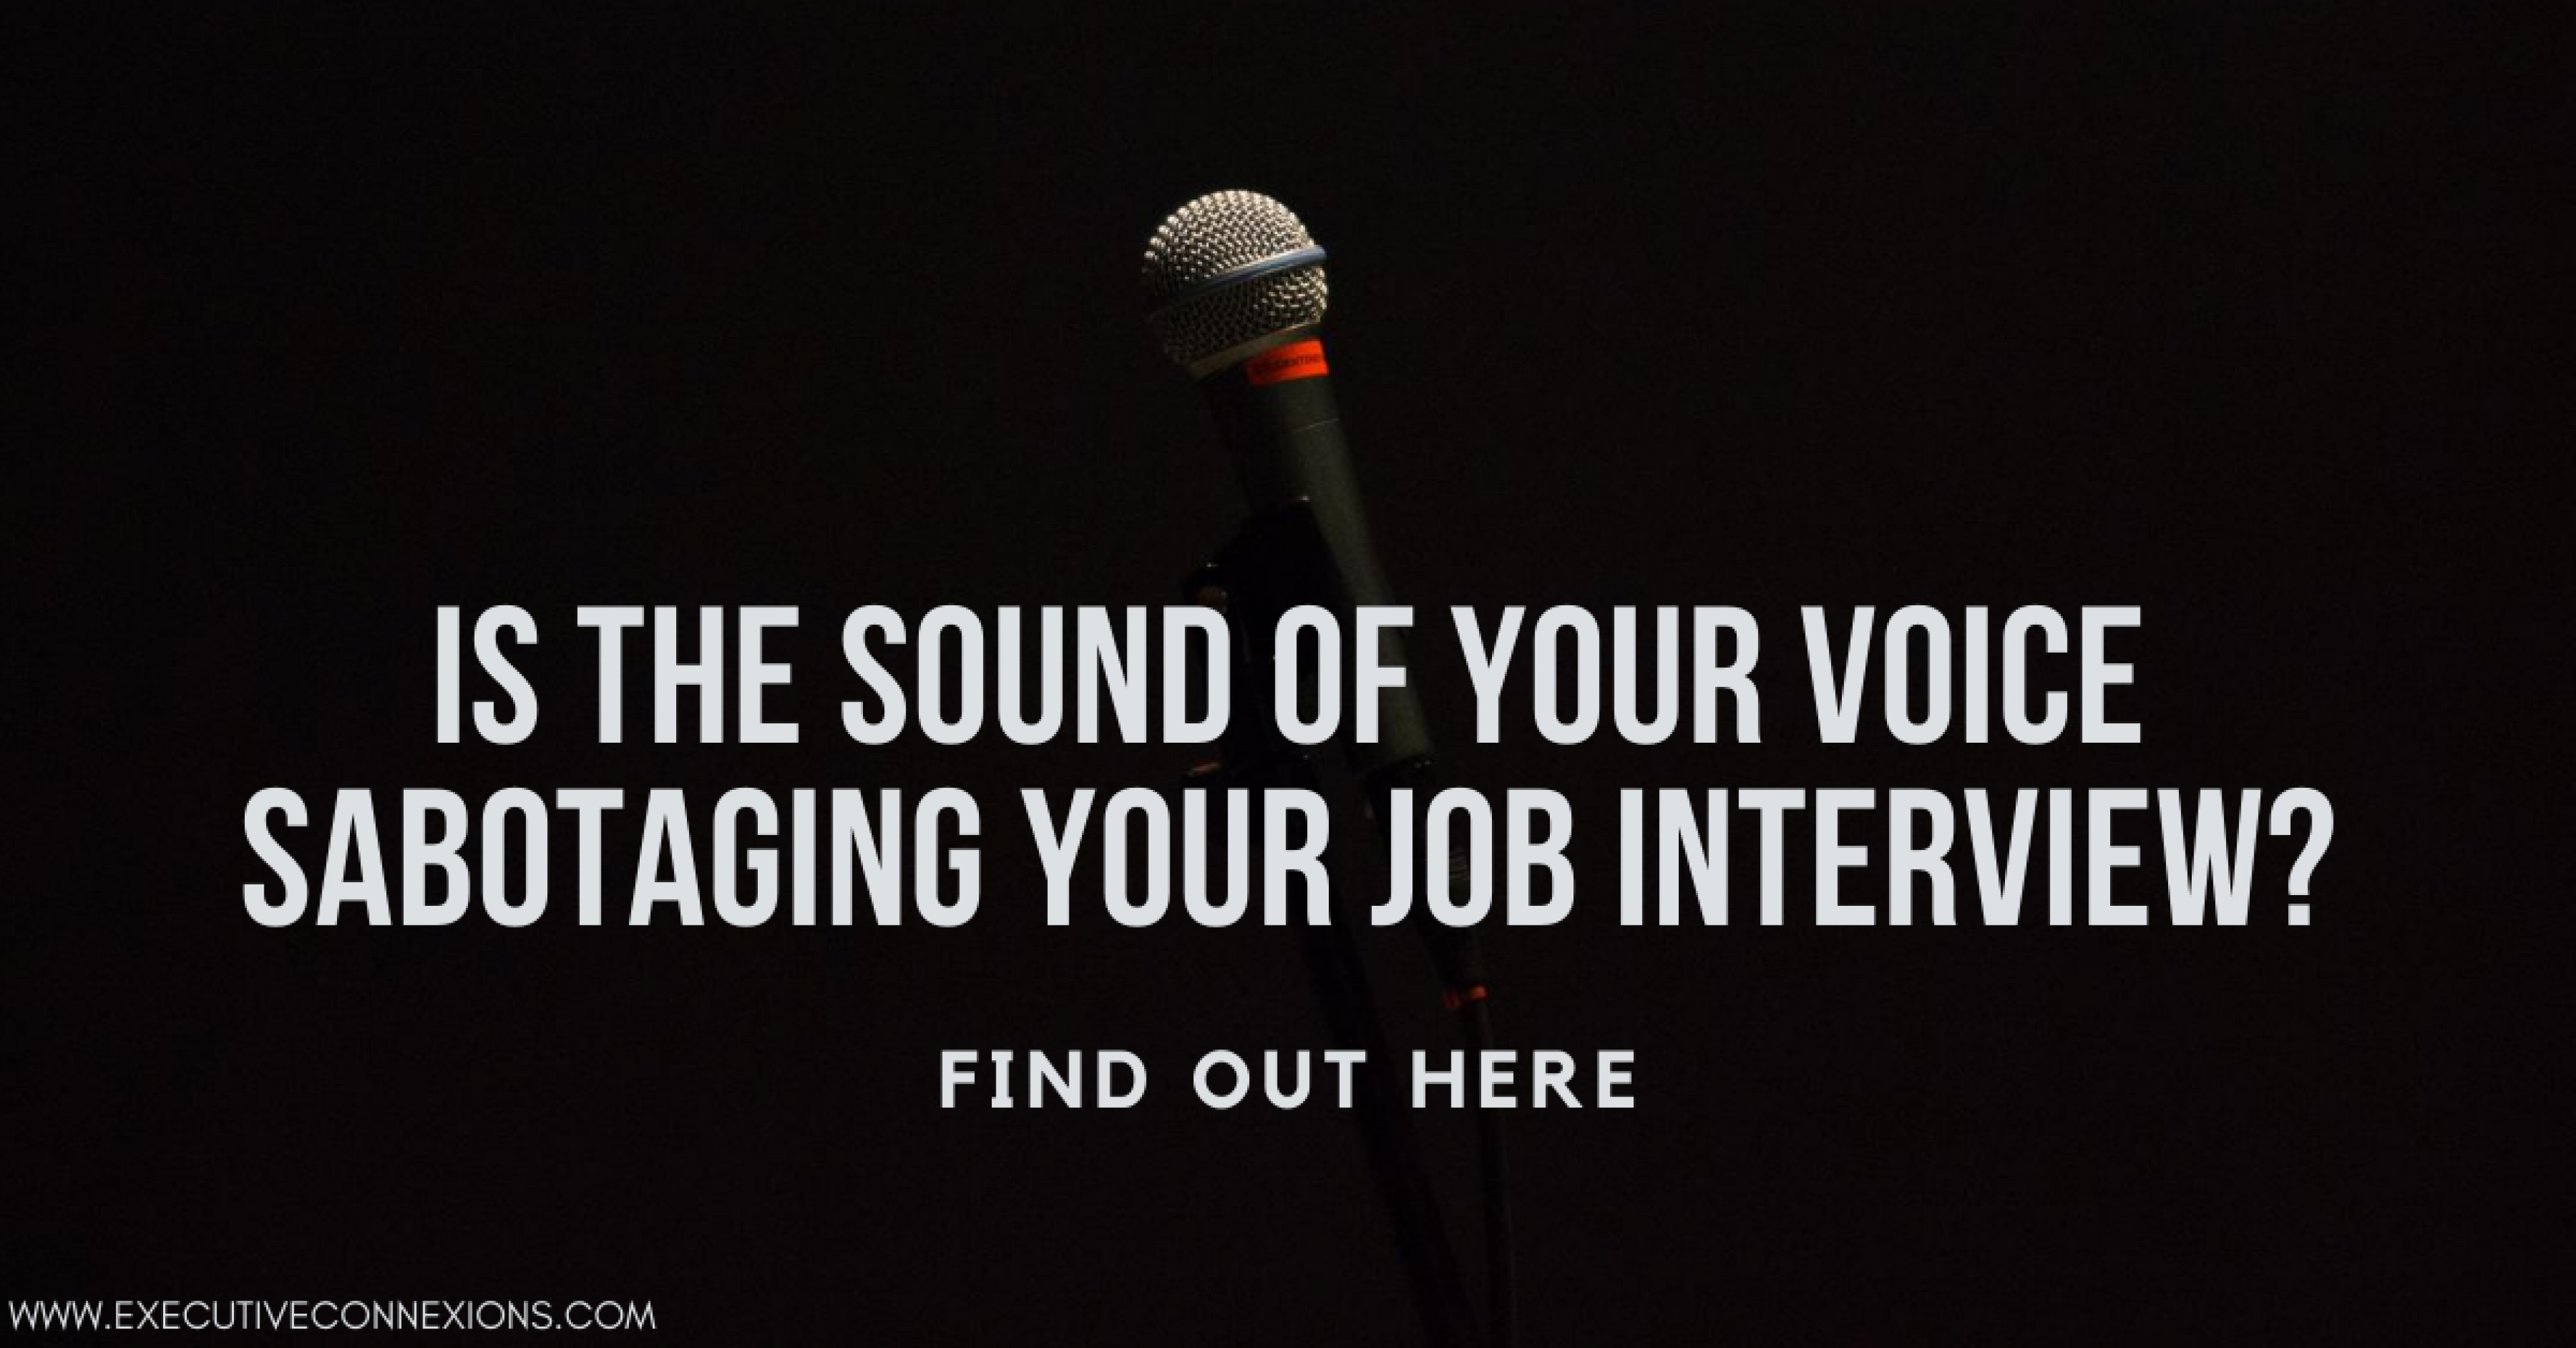 Is the sound of your voice sabotaging your job interview?